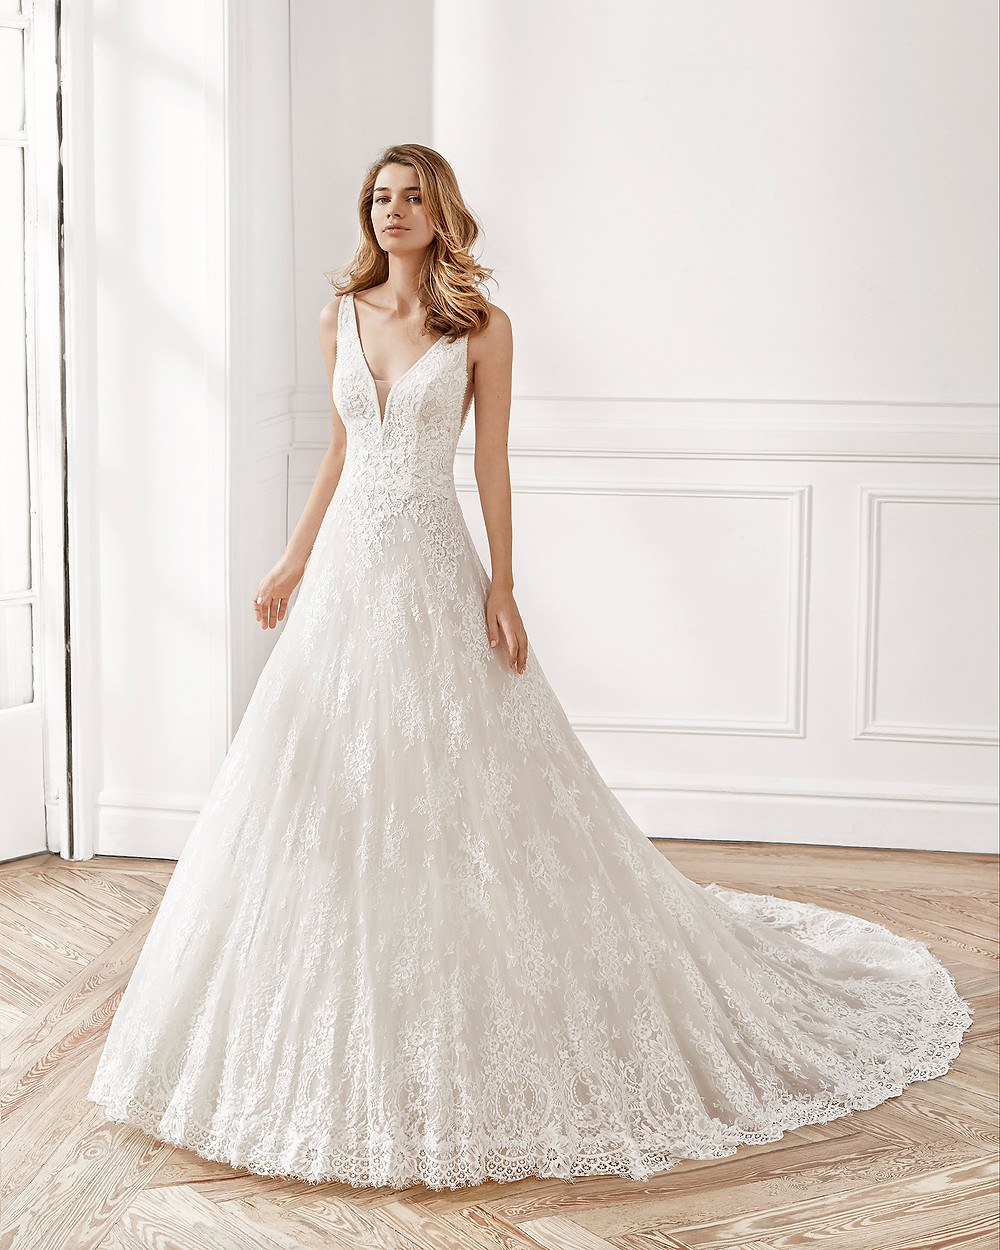 An Aire Barcelona 2020 romantic lace ball gown wedding dress with a v neckline